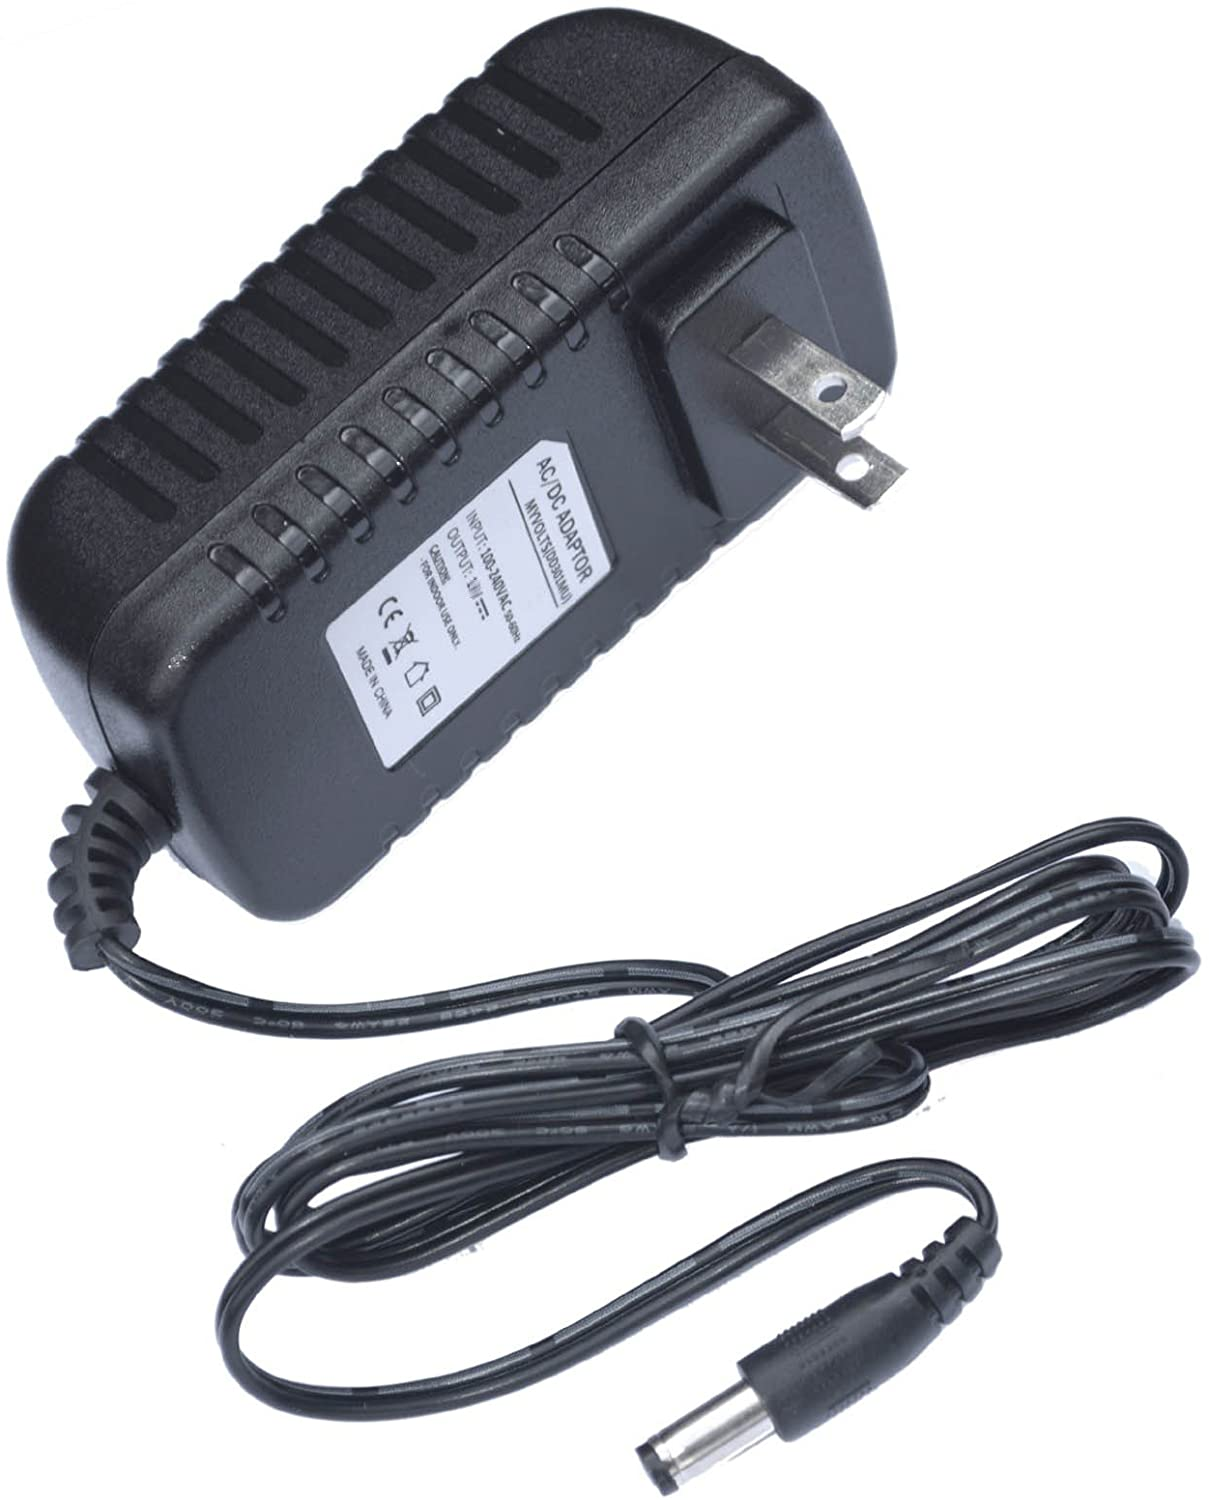 MyVolts 12V Power Supply Adaptor Compatible with Kawai L1 Keyboard - US Plug